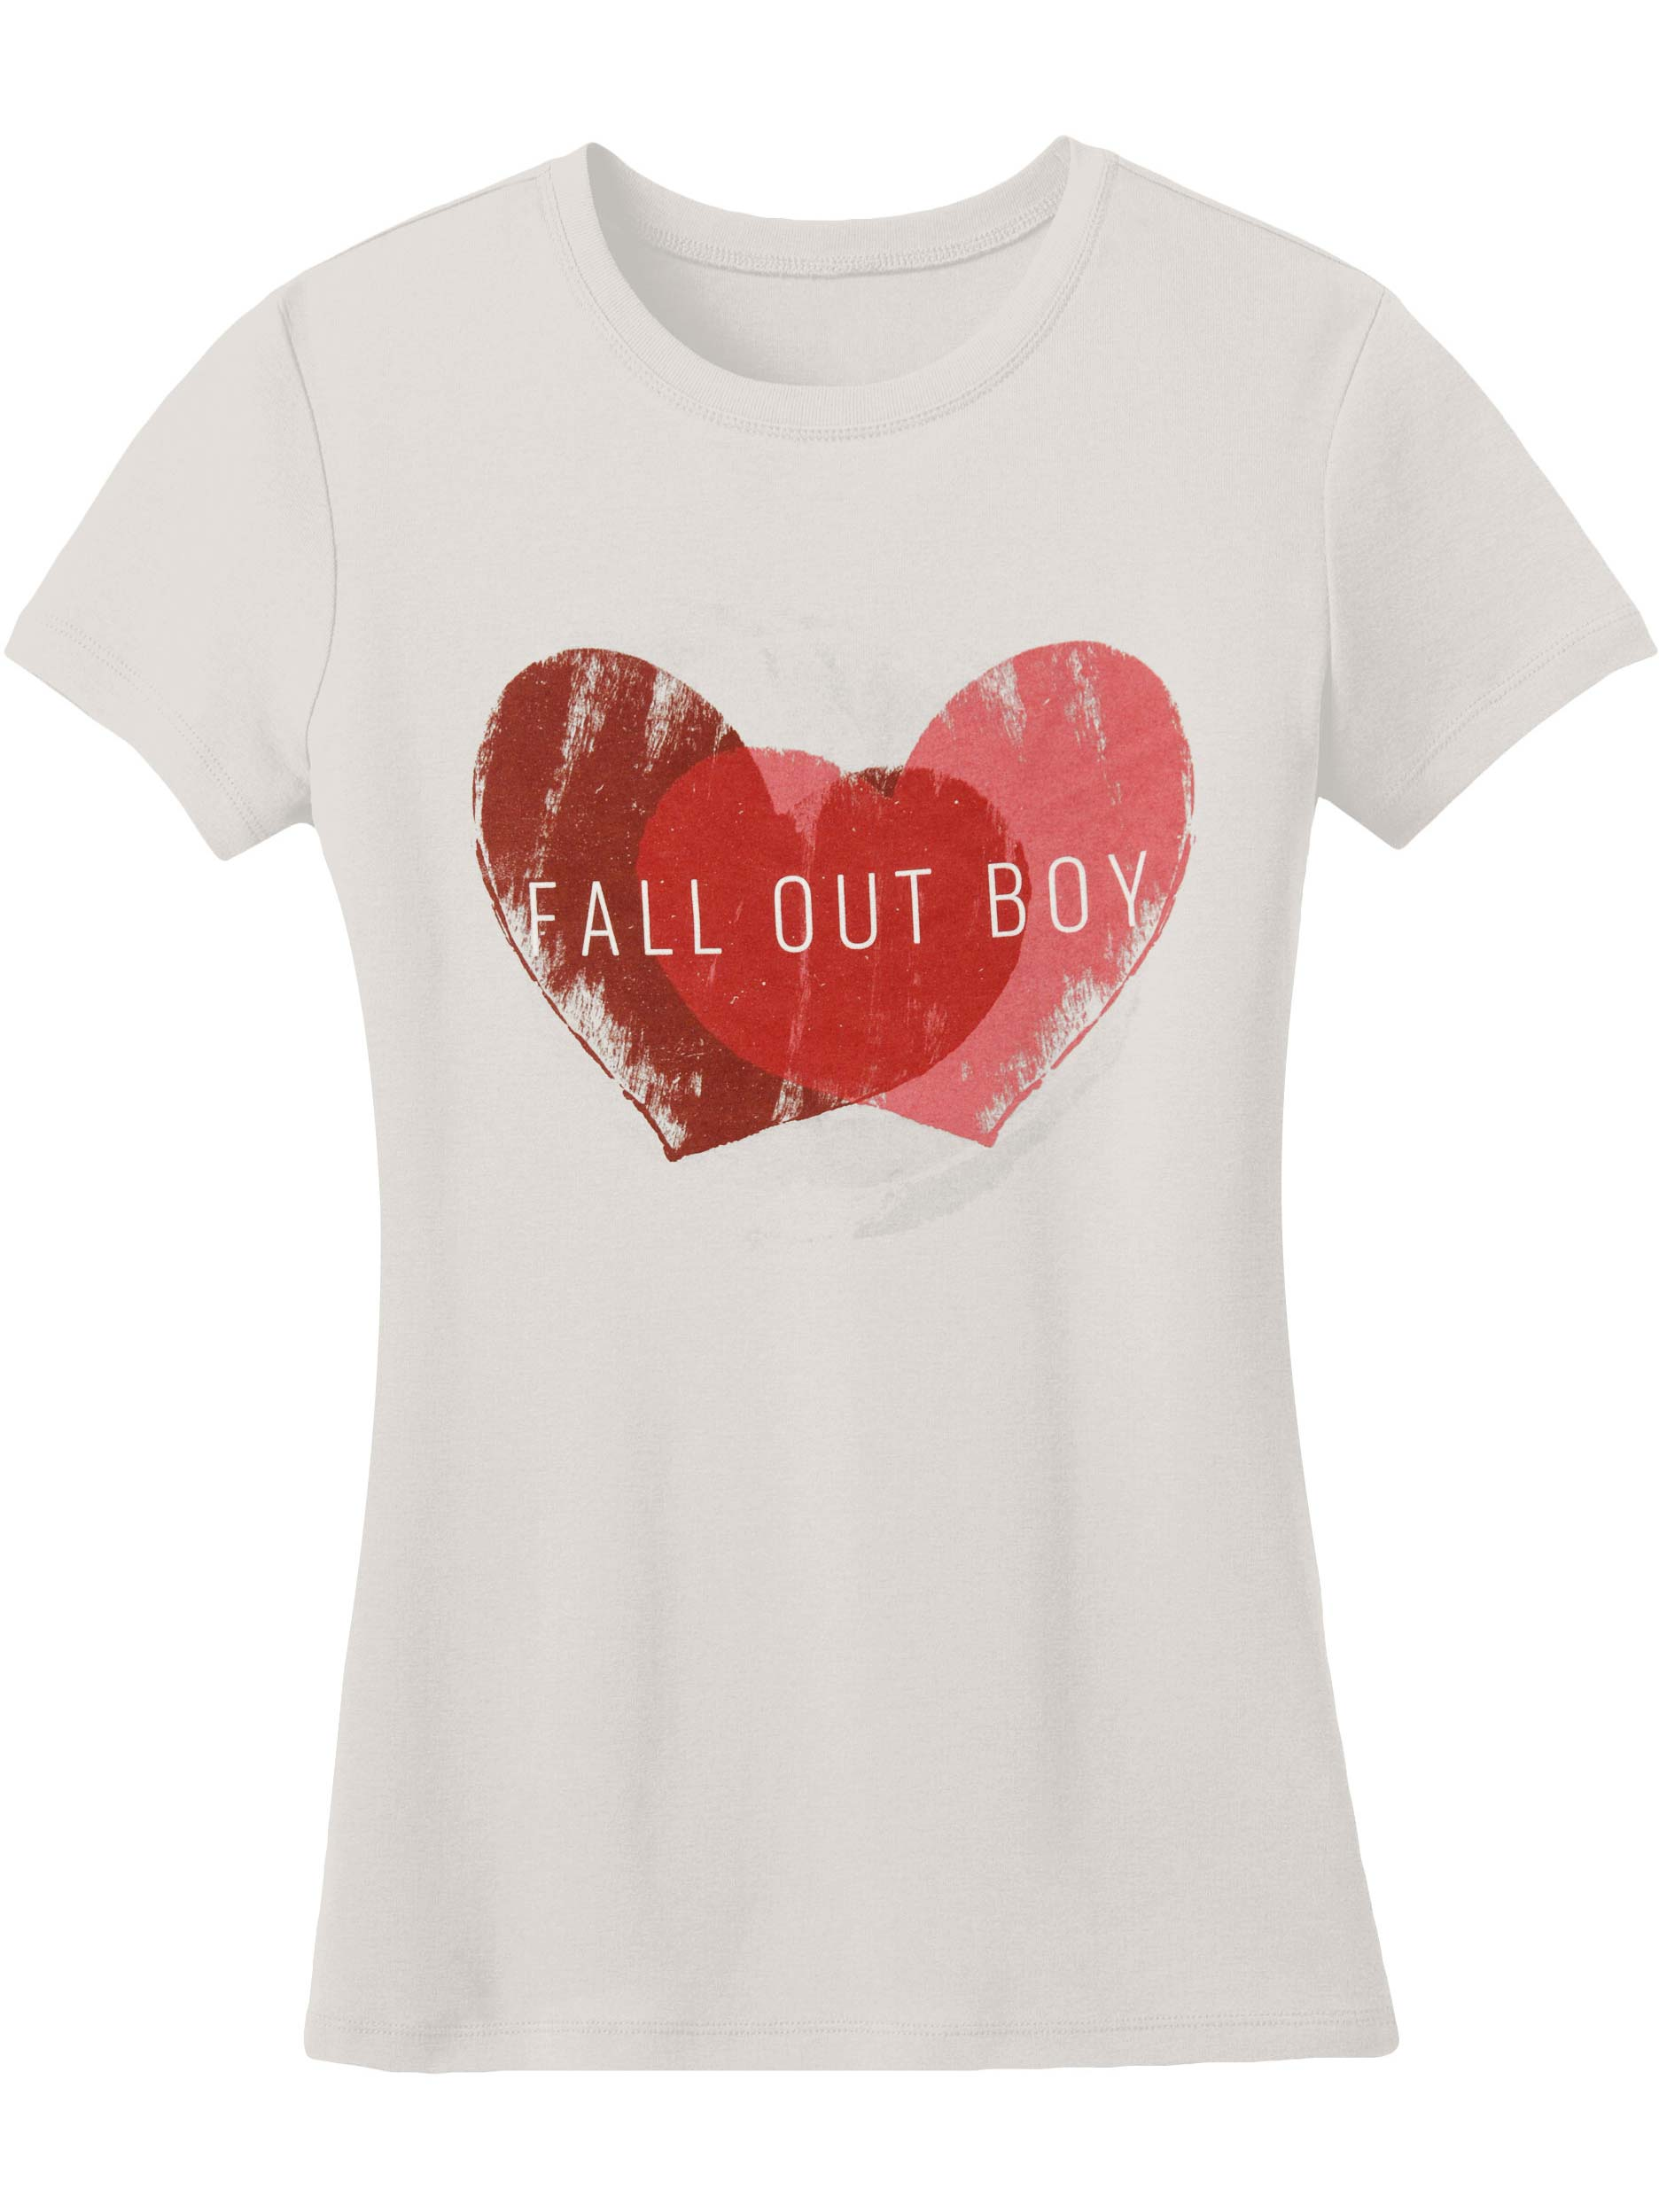 Fall Out Boy  Weathered Hearts Girls Jr Soft tee Silver